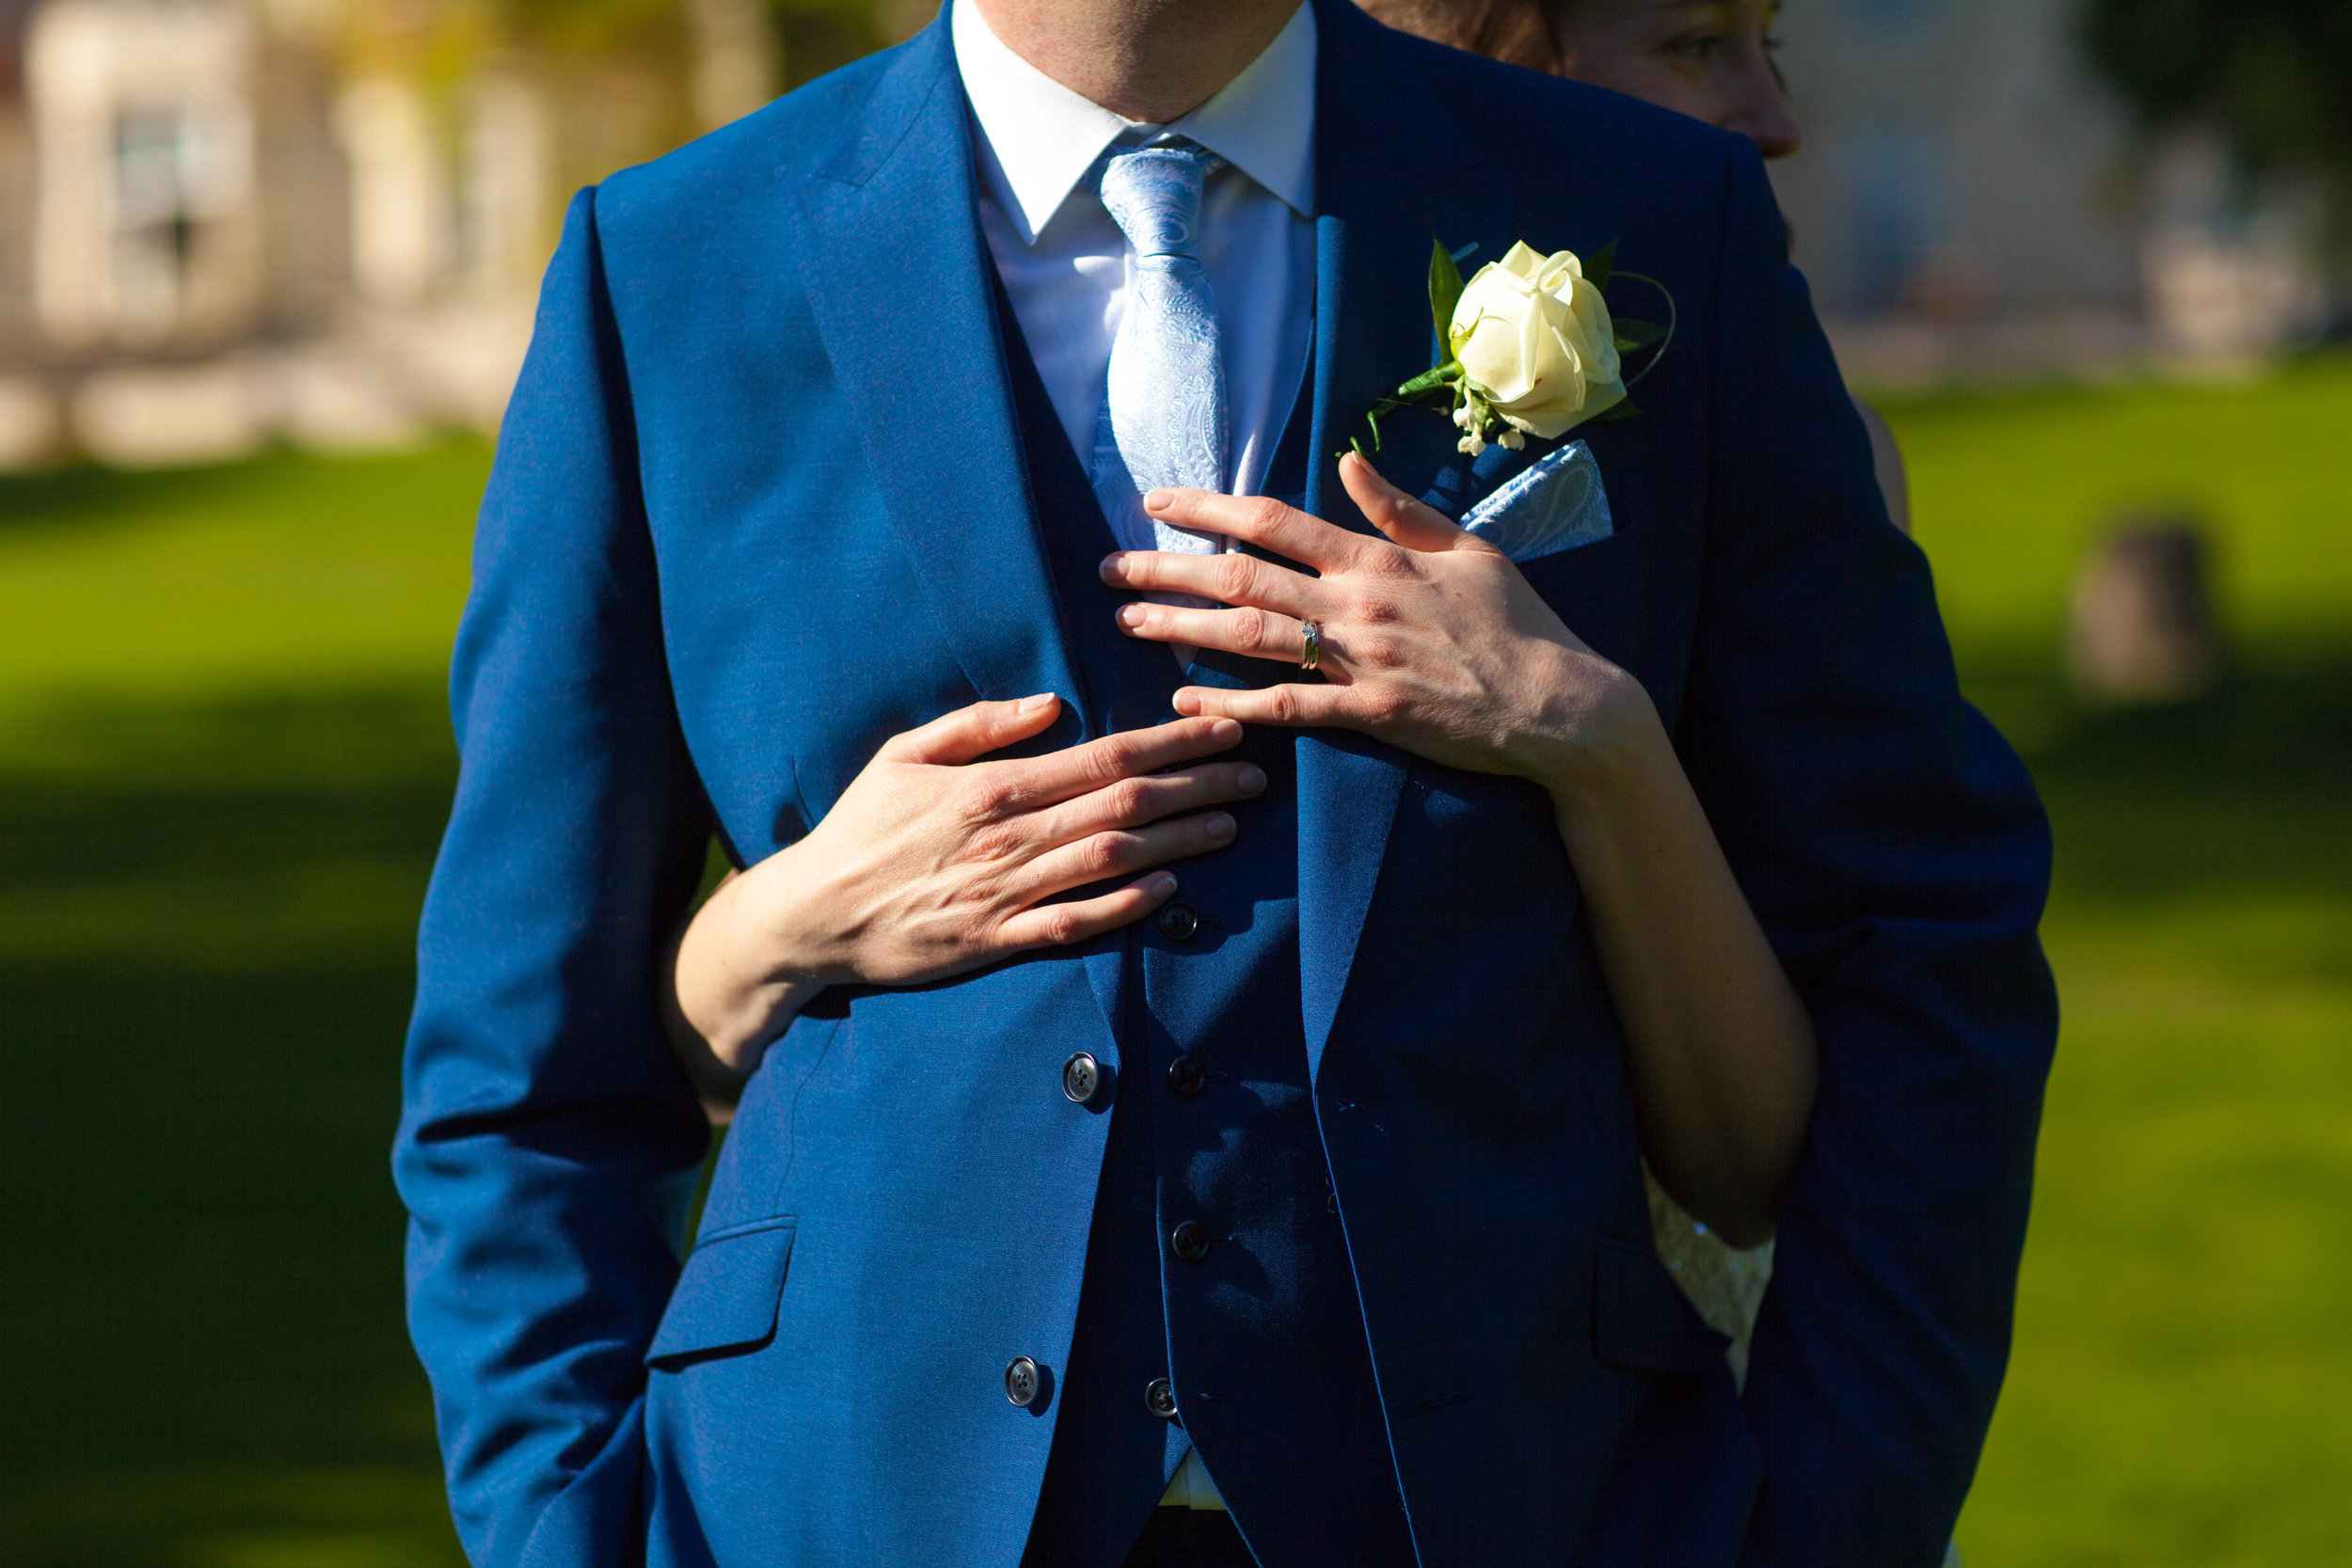 NLPhotography_Taplow_House-Wedding_Photographer_Emily&Alan_C-444.jpg